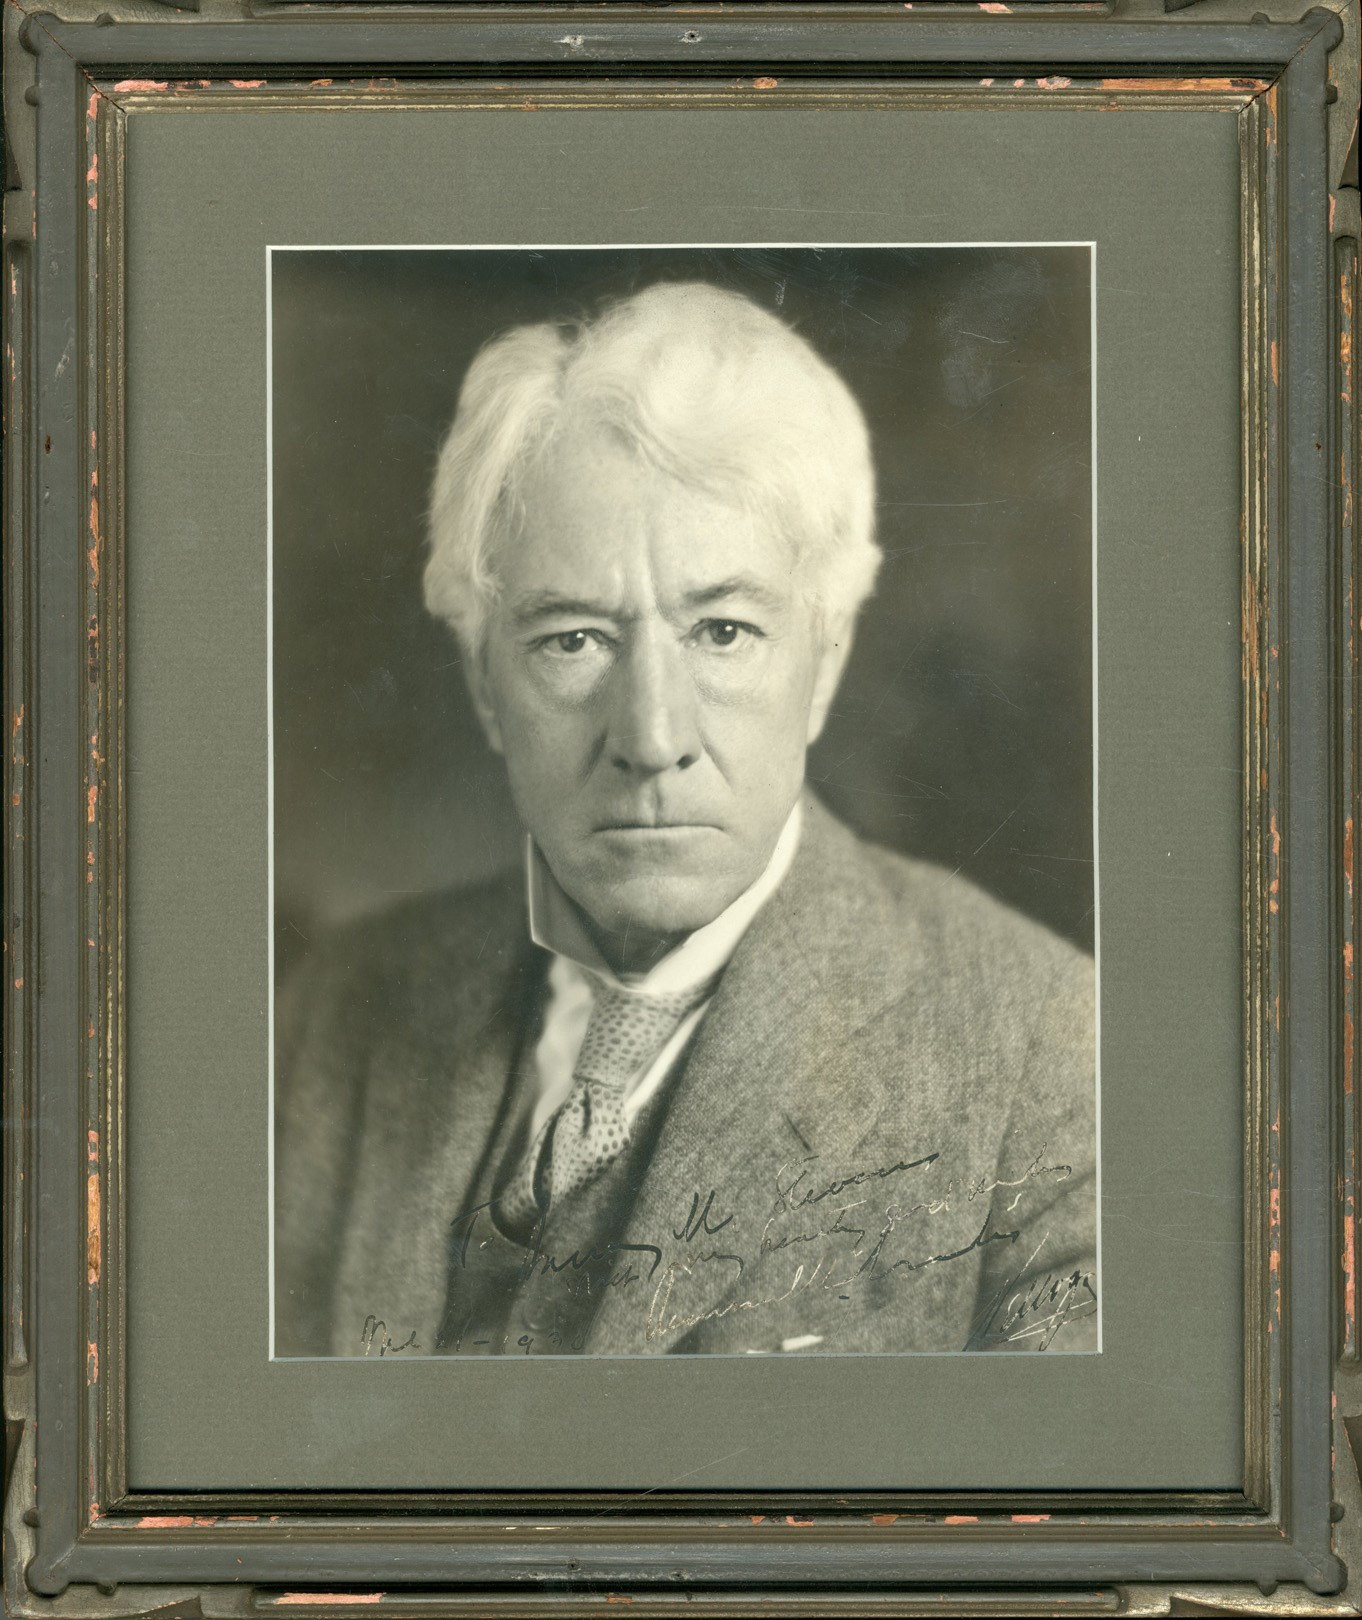 1930 Kenesaw Landis Signed Photograph to Harry M. Stevens (PSA)